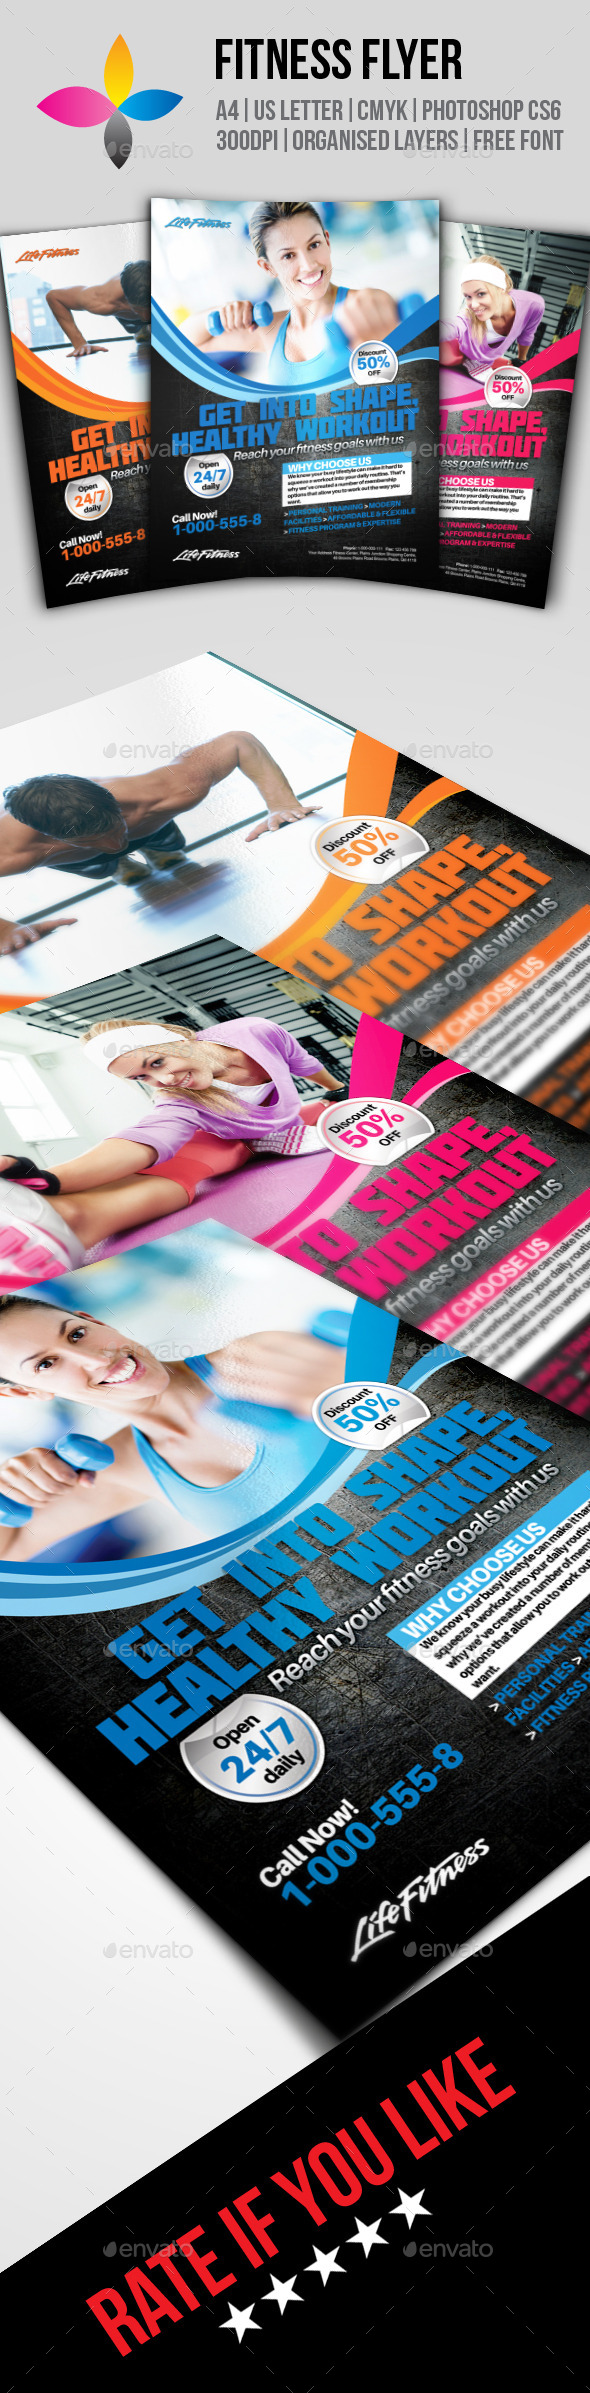 GraphicRiver Fitness Flyer 8790461